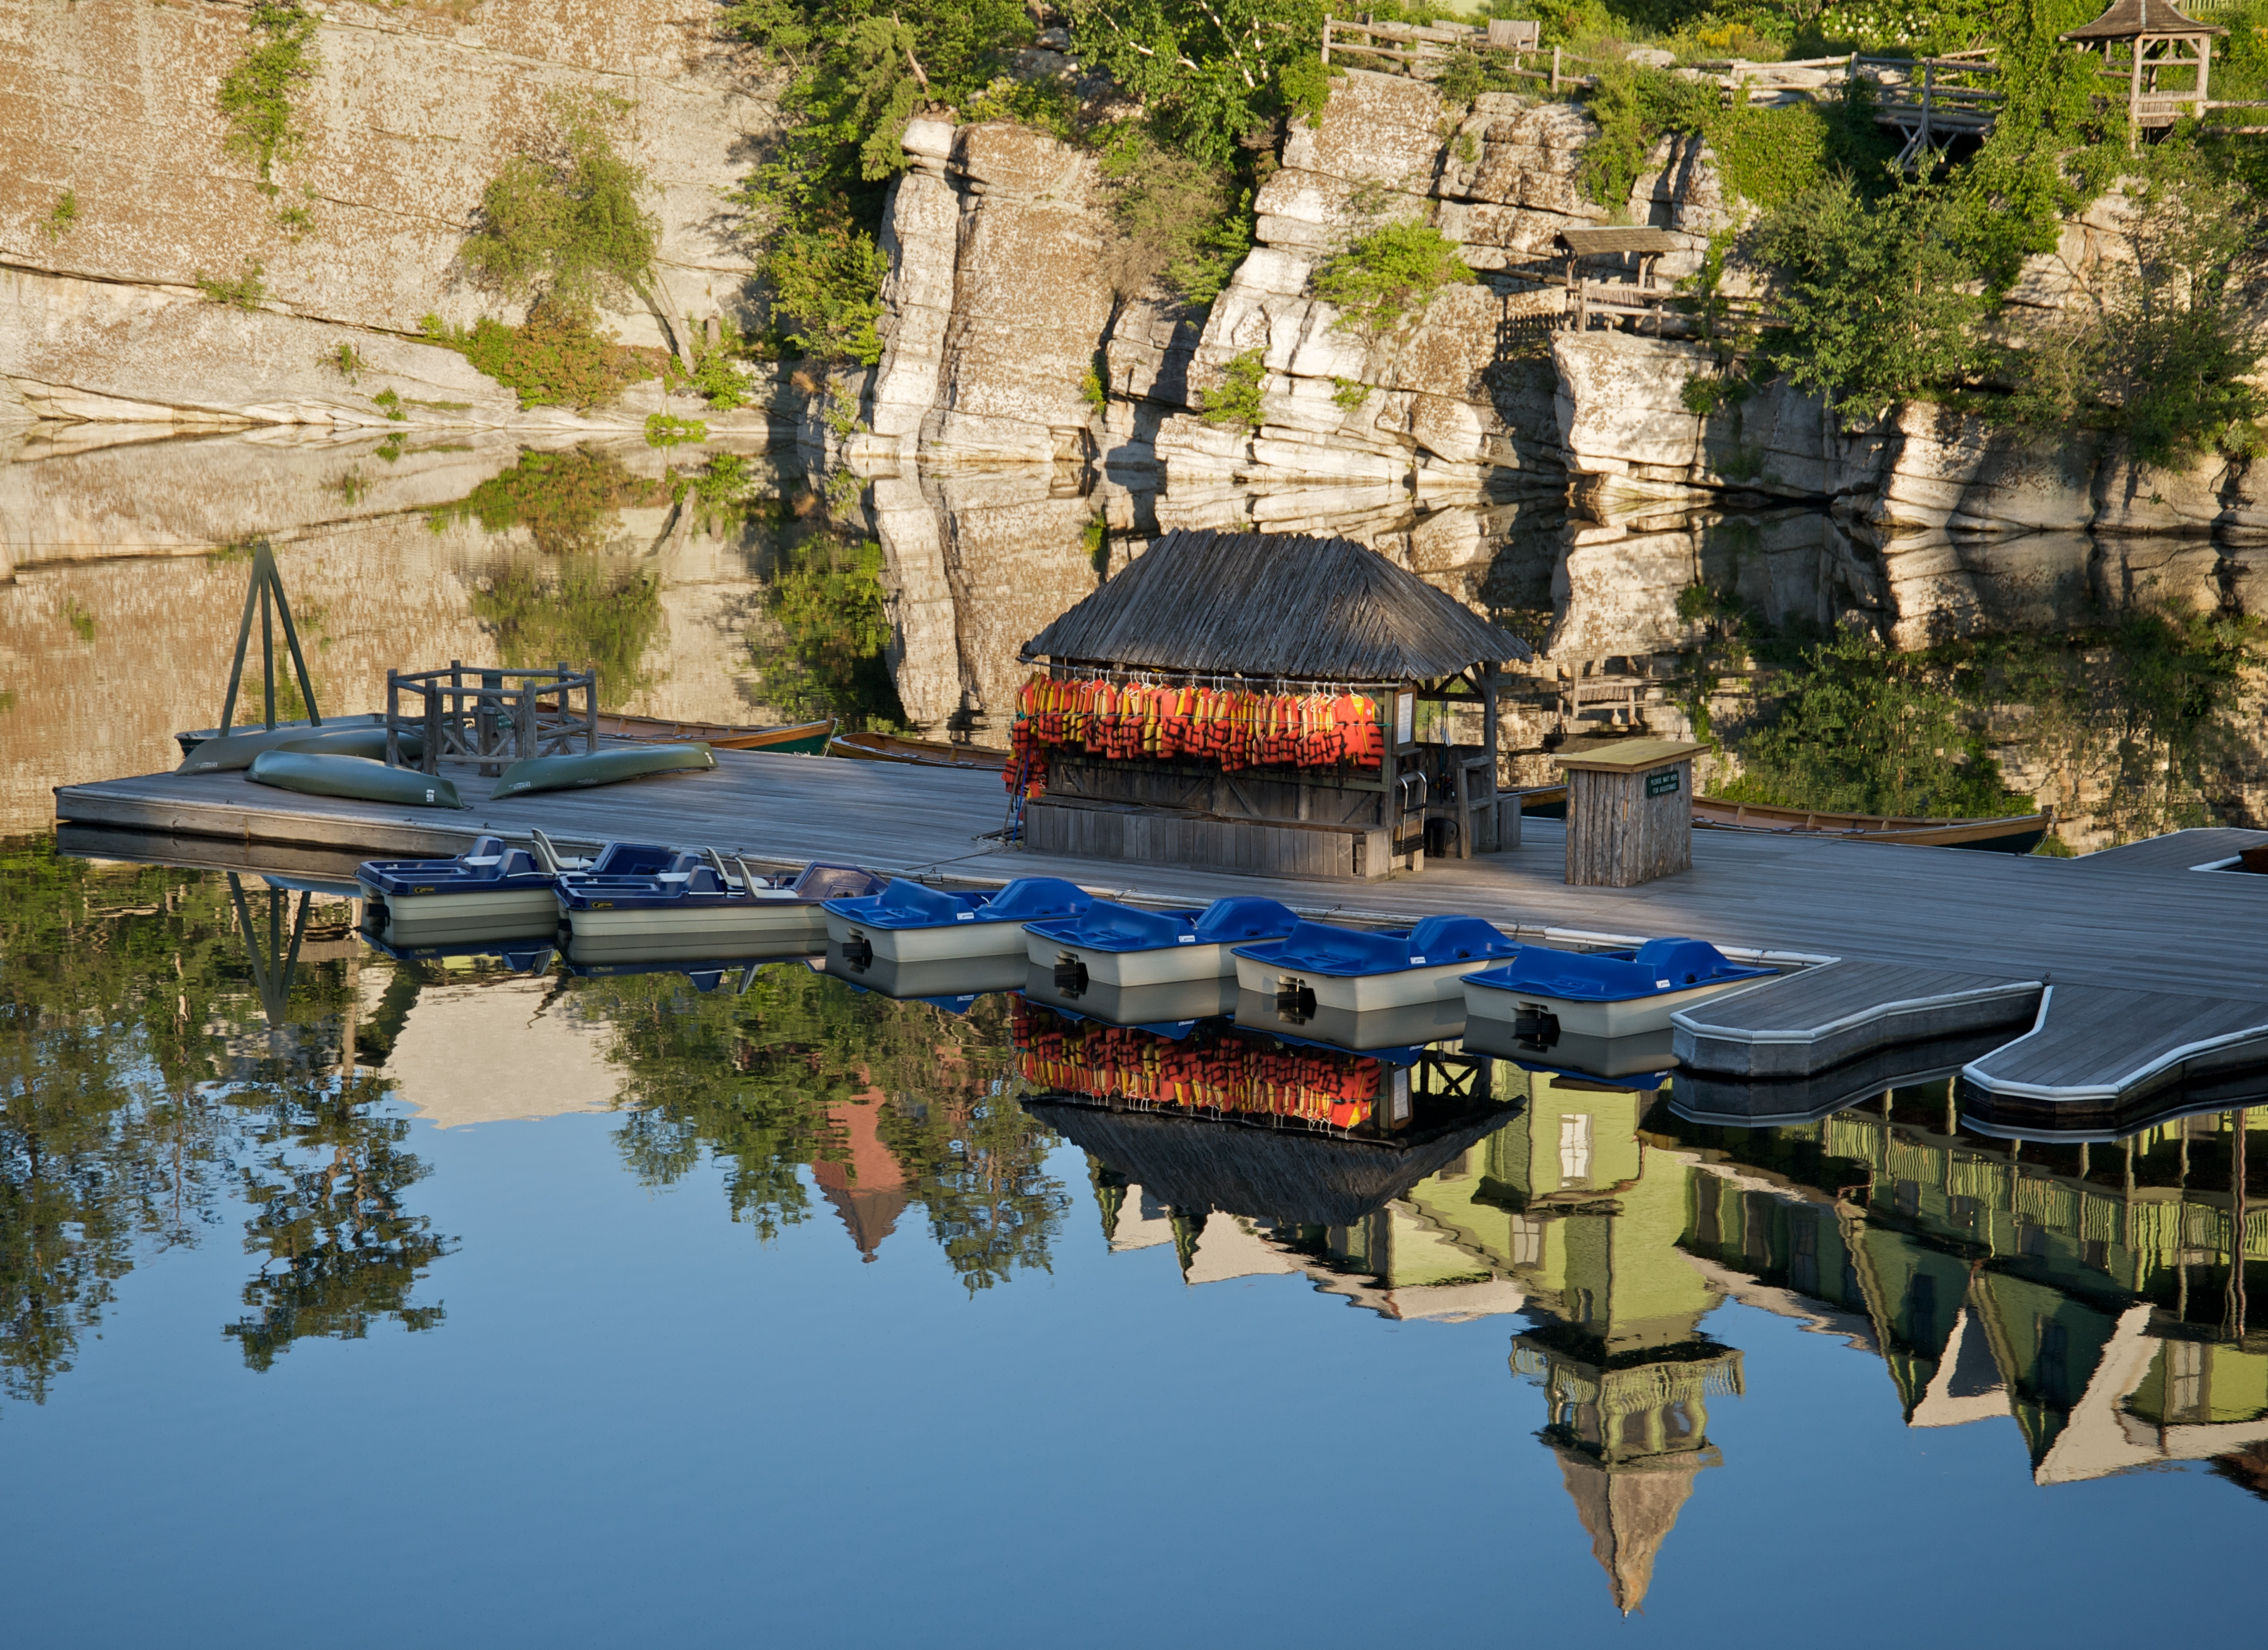 File:Mohonk Mountain House 2011 Boat Dock Against Reflection of ...